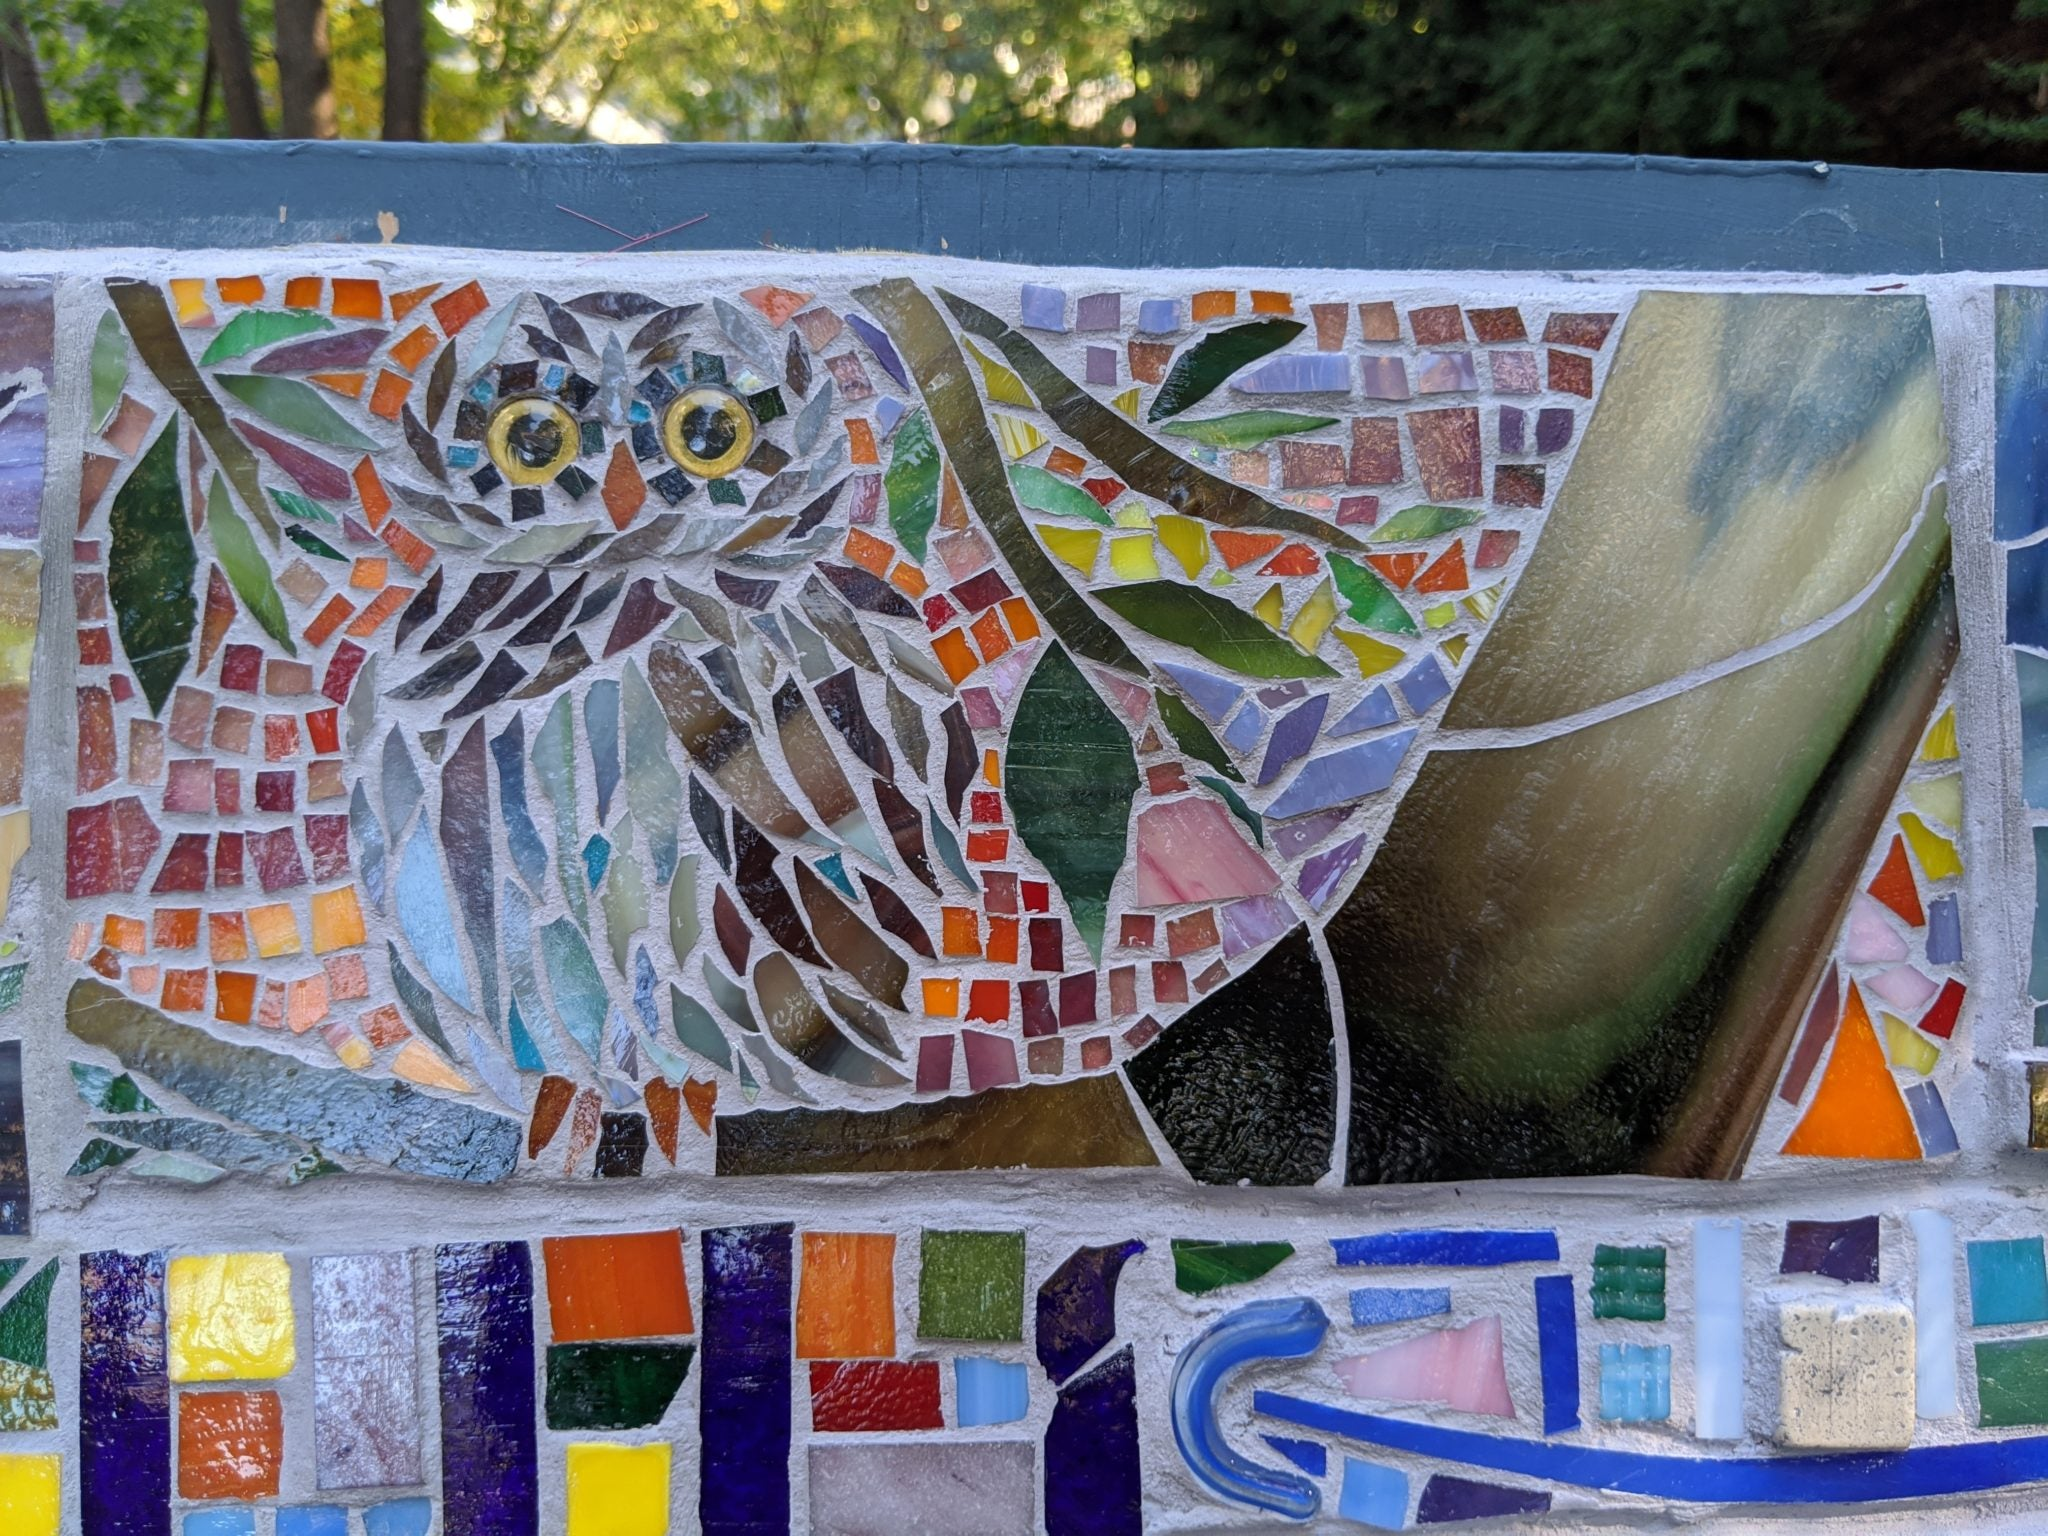 outdoor mosaic owl panel with owl glass eyes in yellow